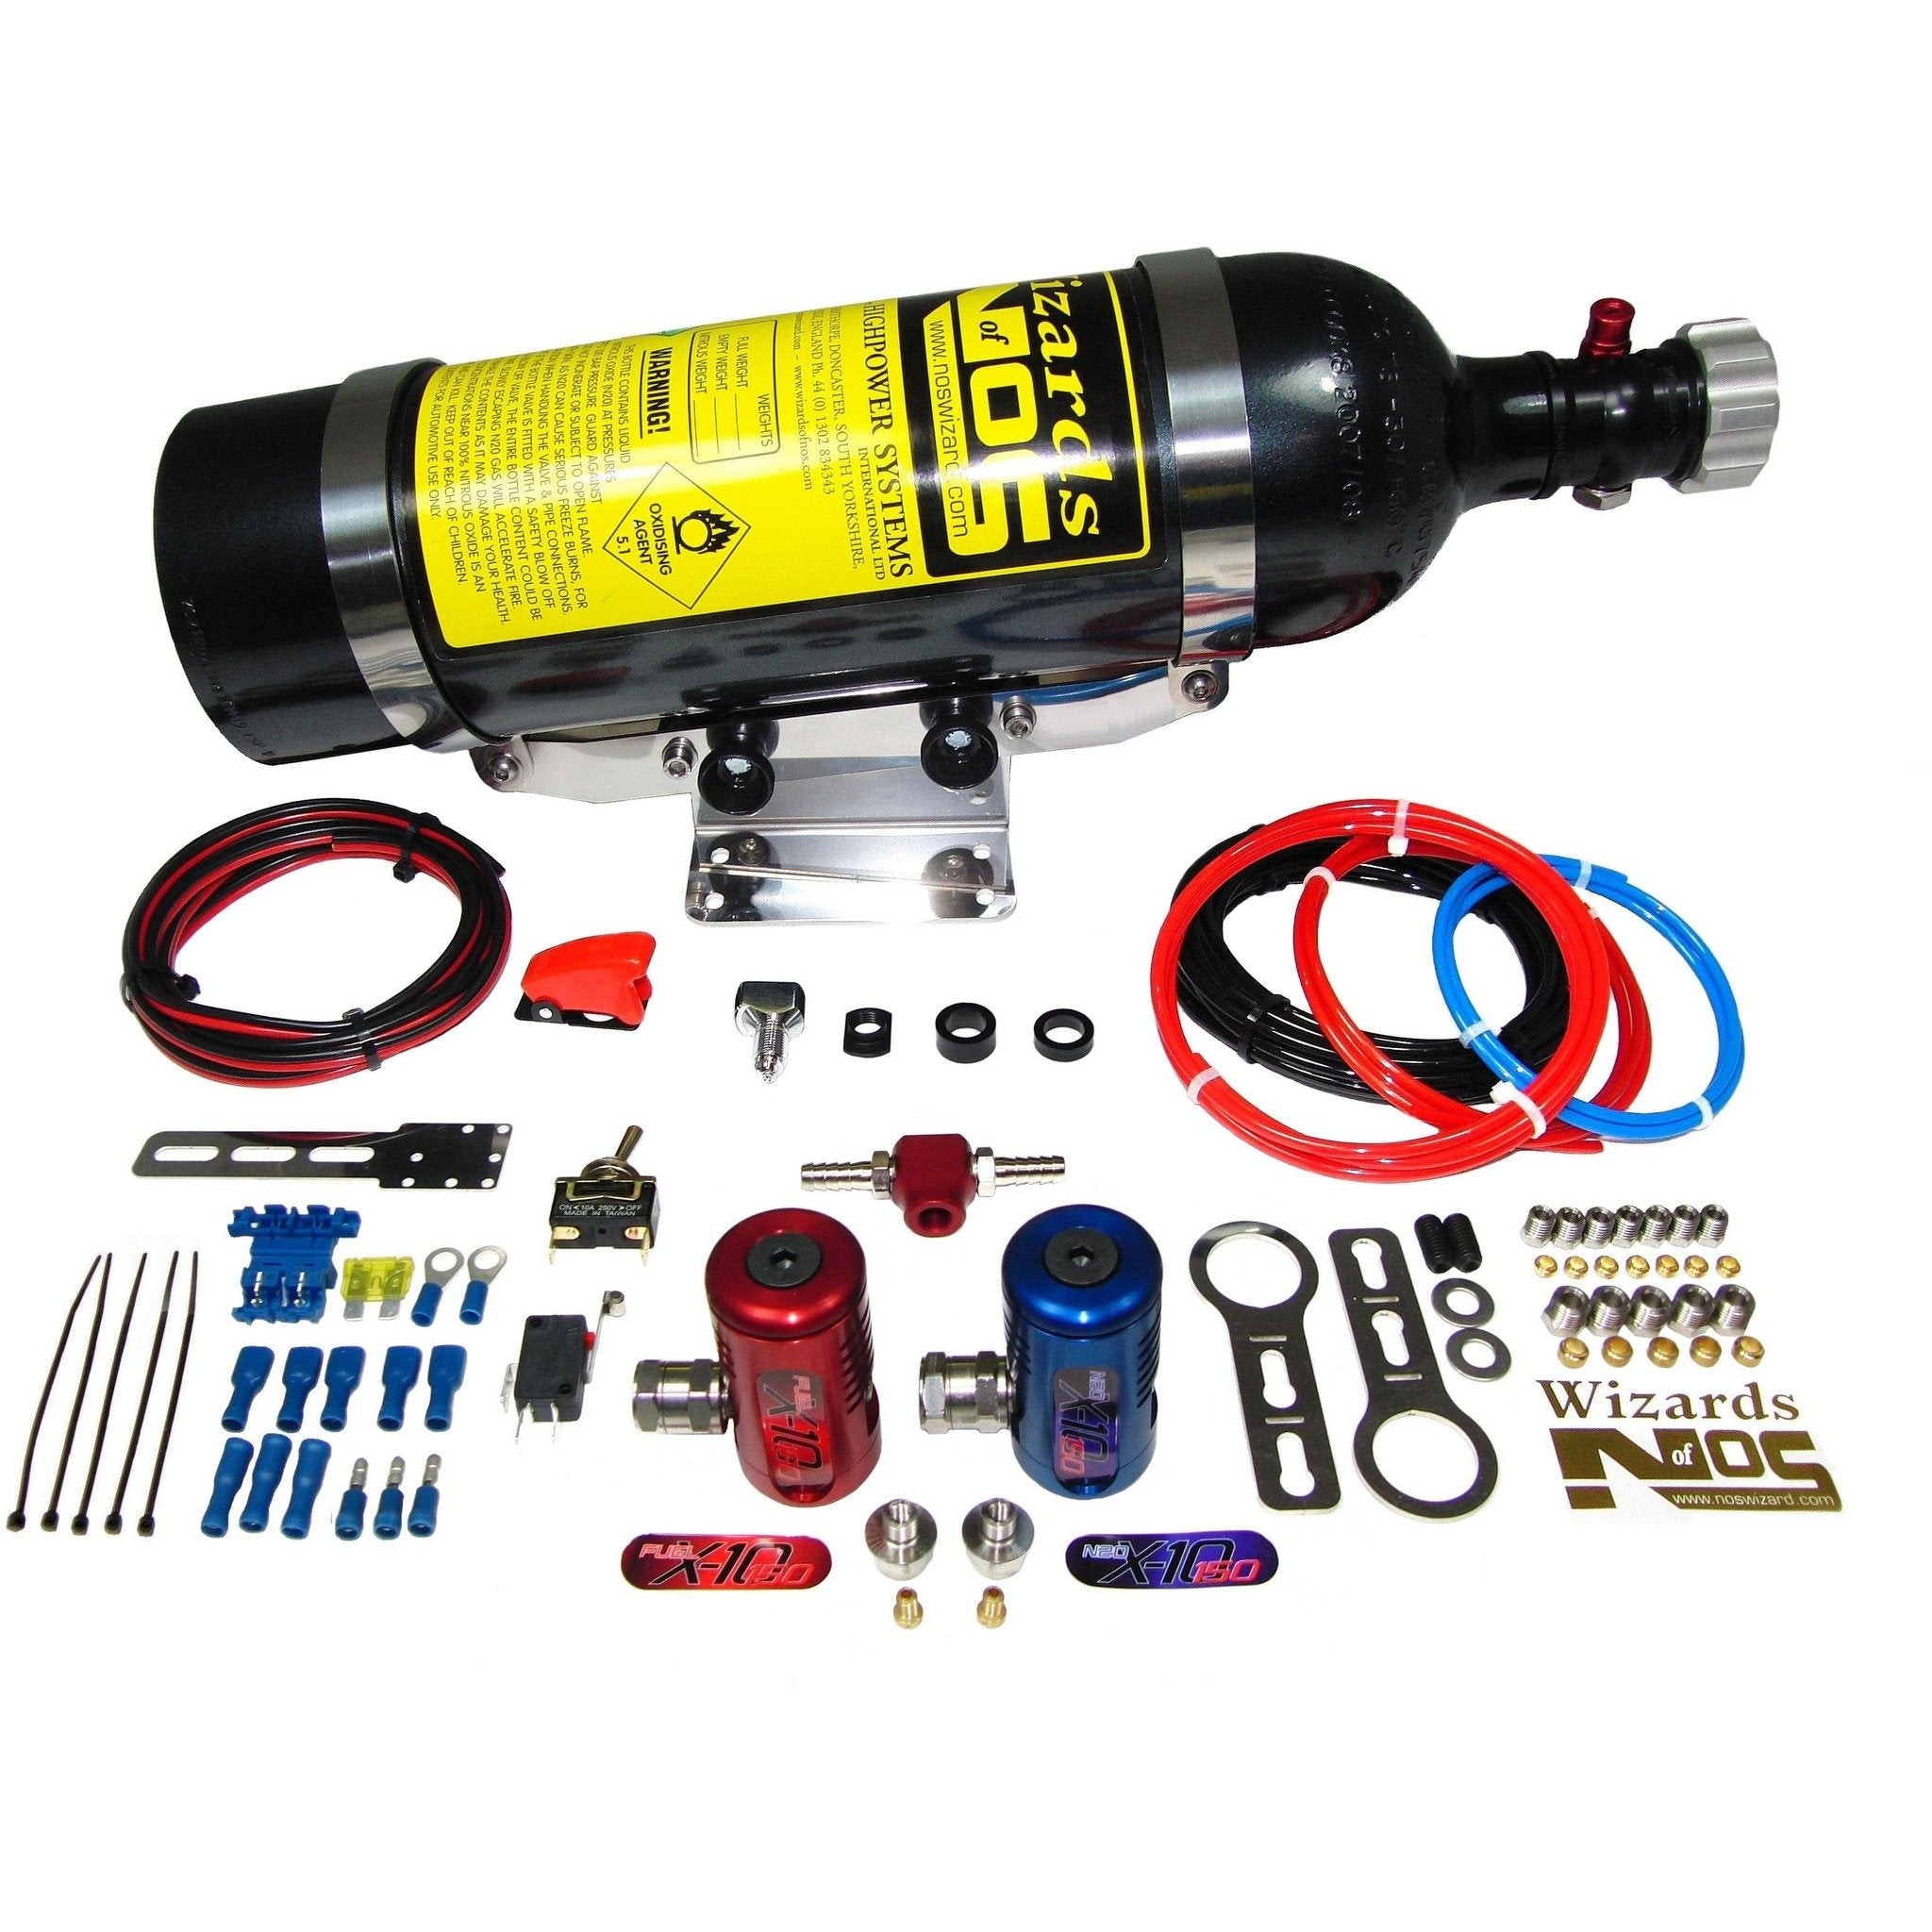 SB150i Nitrous Kit Suitable for most injected engines with a single throttle body,  NITROUS OXIDE,  WIZARDS OF NOS,  Dark Road Performance - Dark Road Performance Ltd